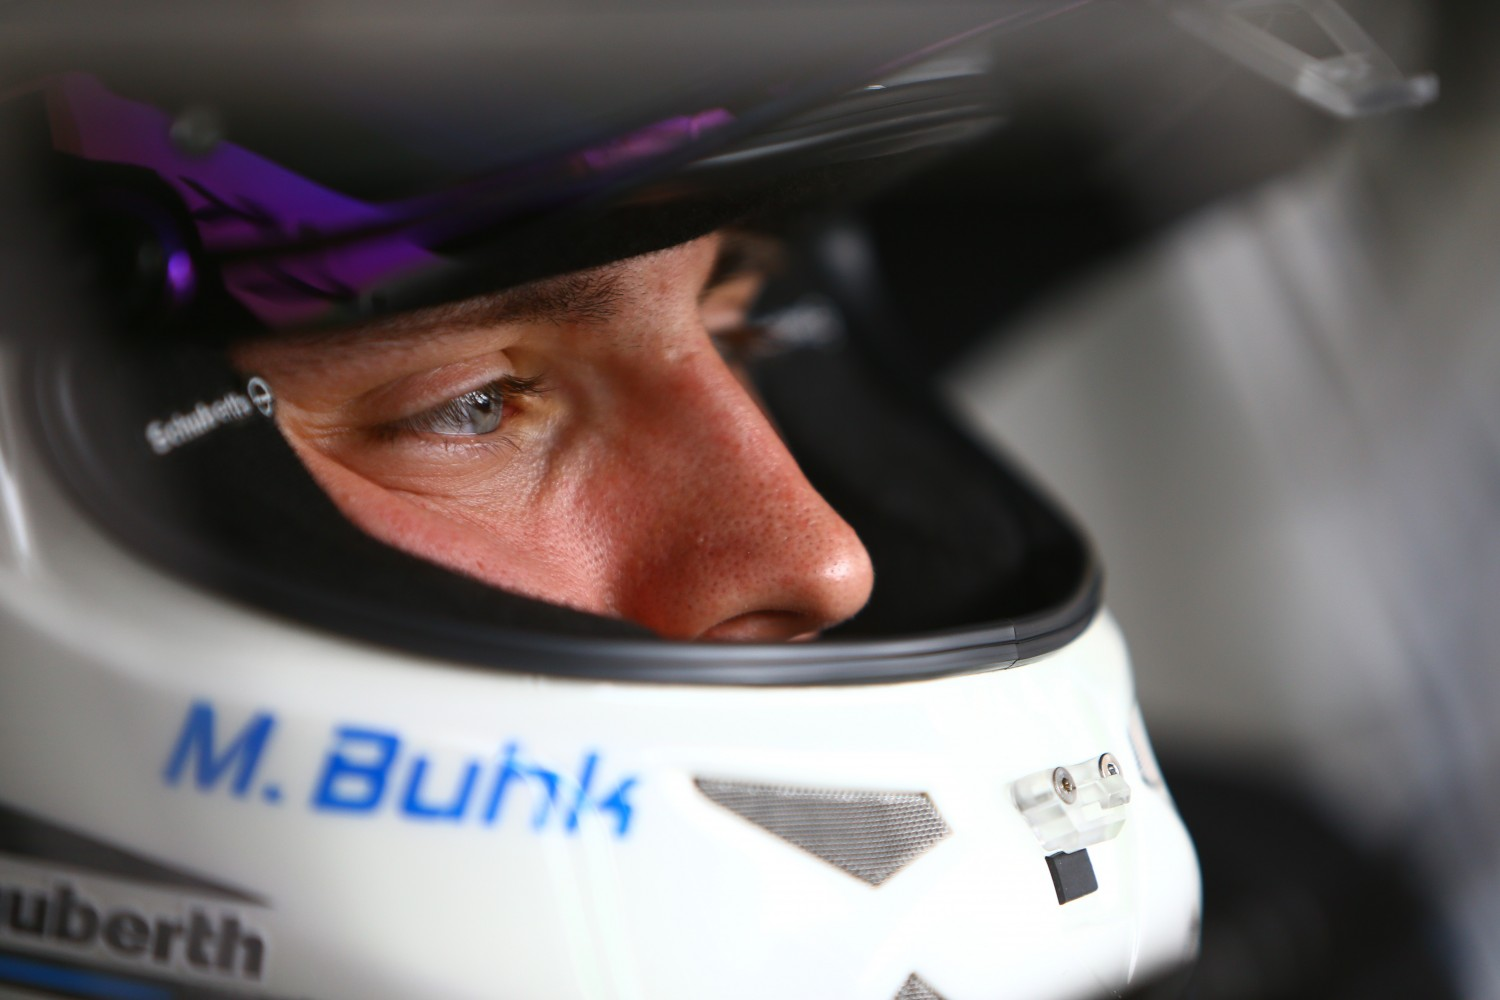 Maxi Buhk quickest in first free practice